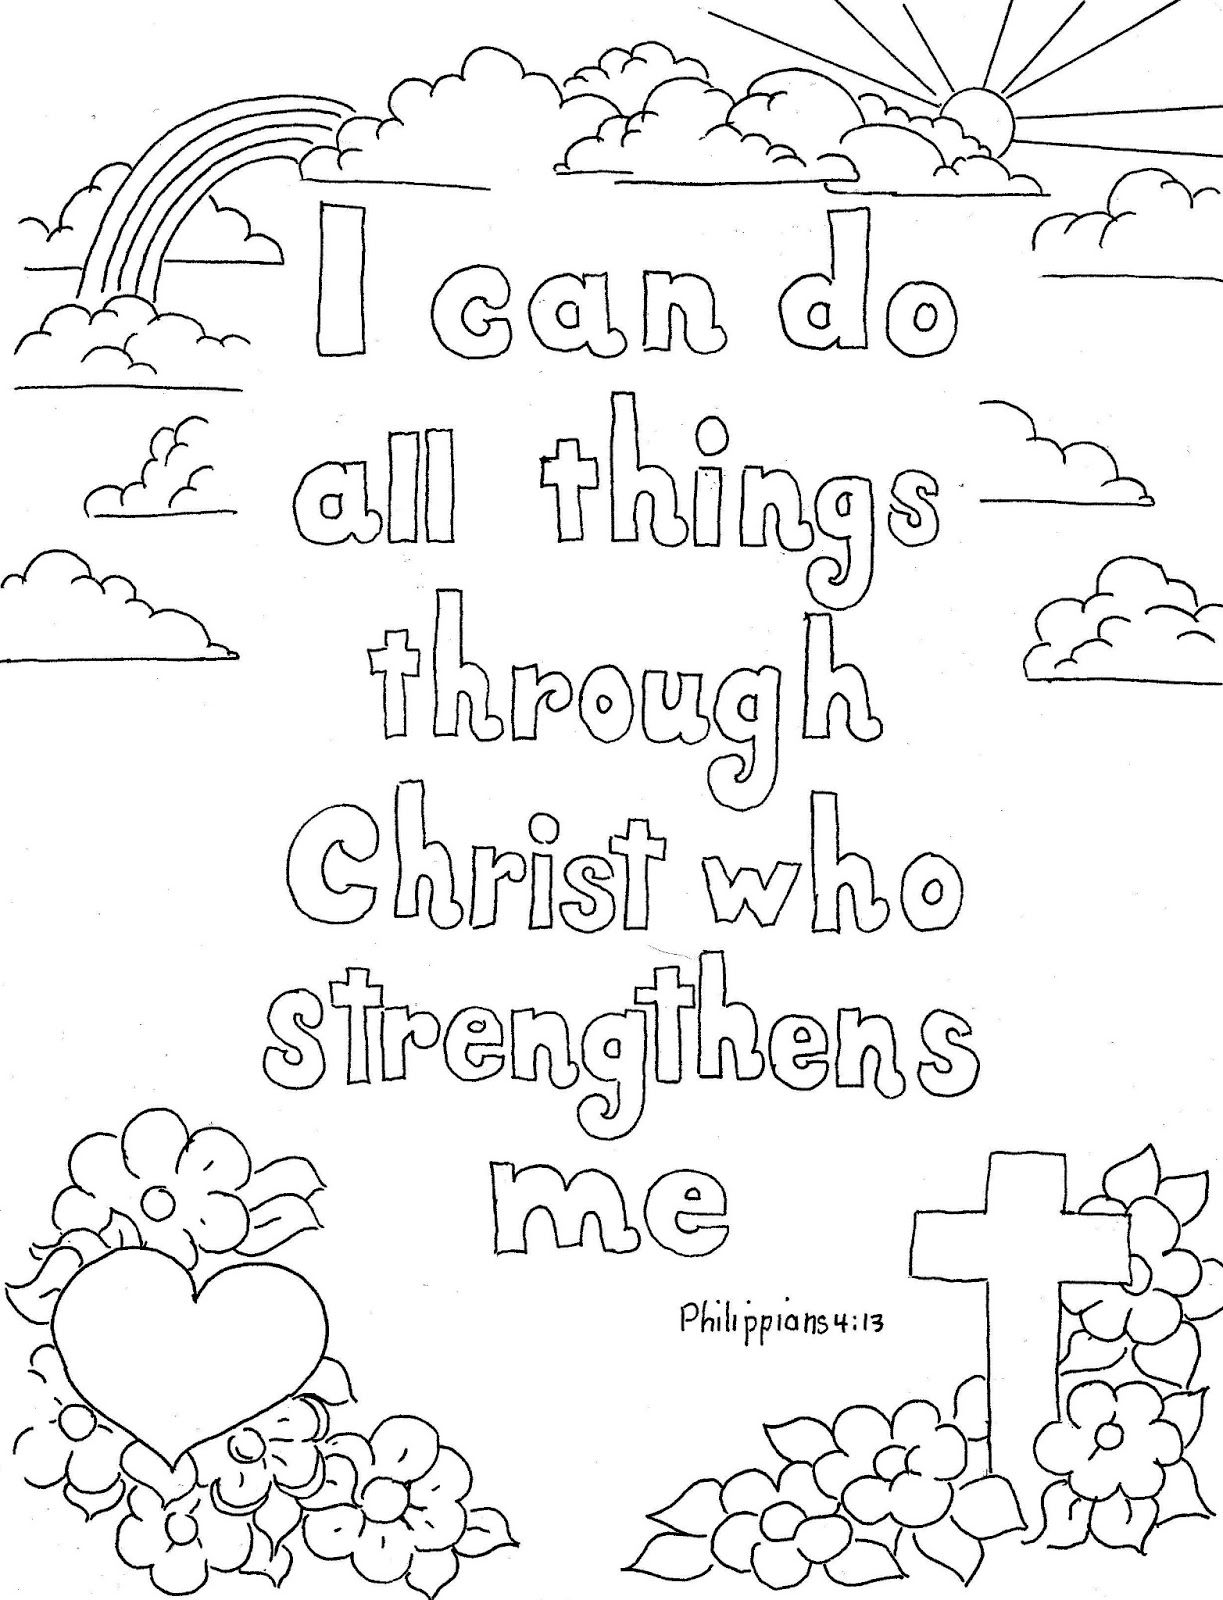 this free printable coloring page may be printed by parents and